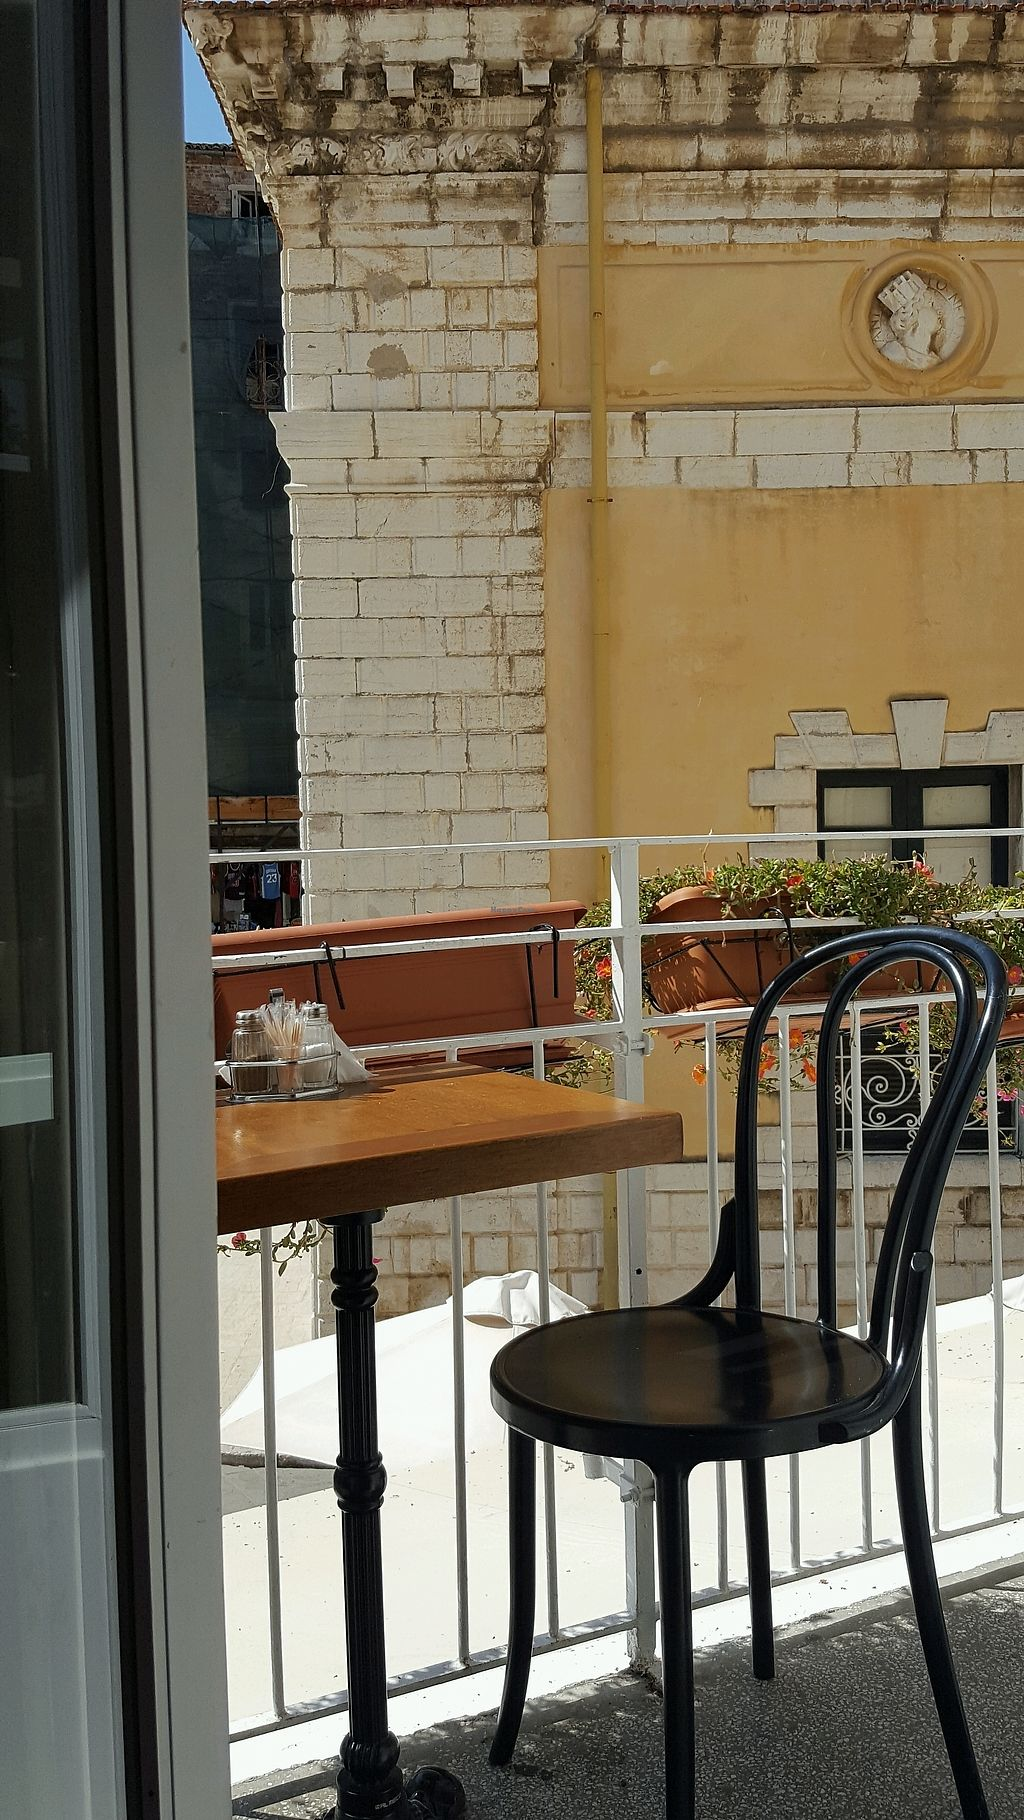 """Photo of Pane e Souvlaki  by <a href=""""/members/profile/JudithRuland"""">JudithRuland</a> <br/>seating on the balcony <br/> September 18, 2017  - <a href='/contact/abuse/image/61709/305651'>Report</a>"""